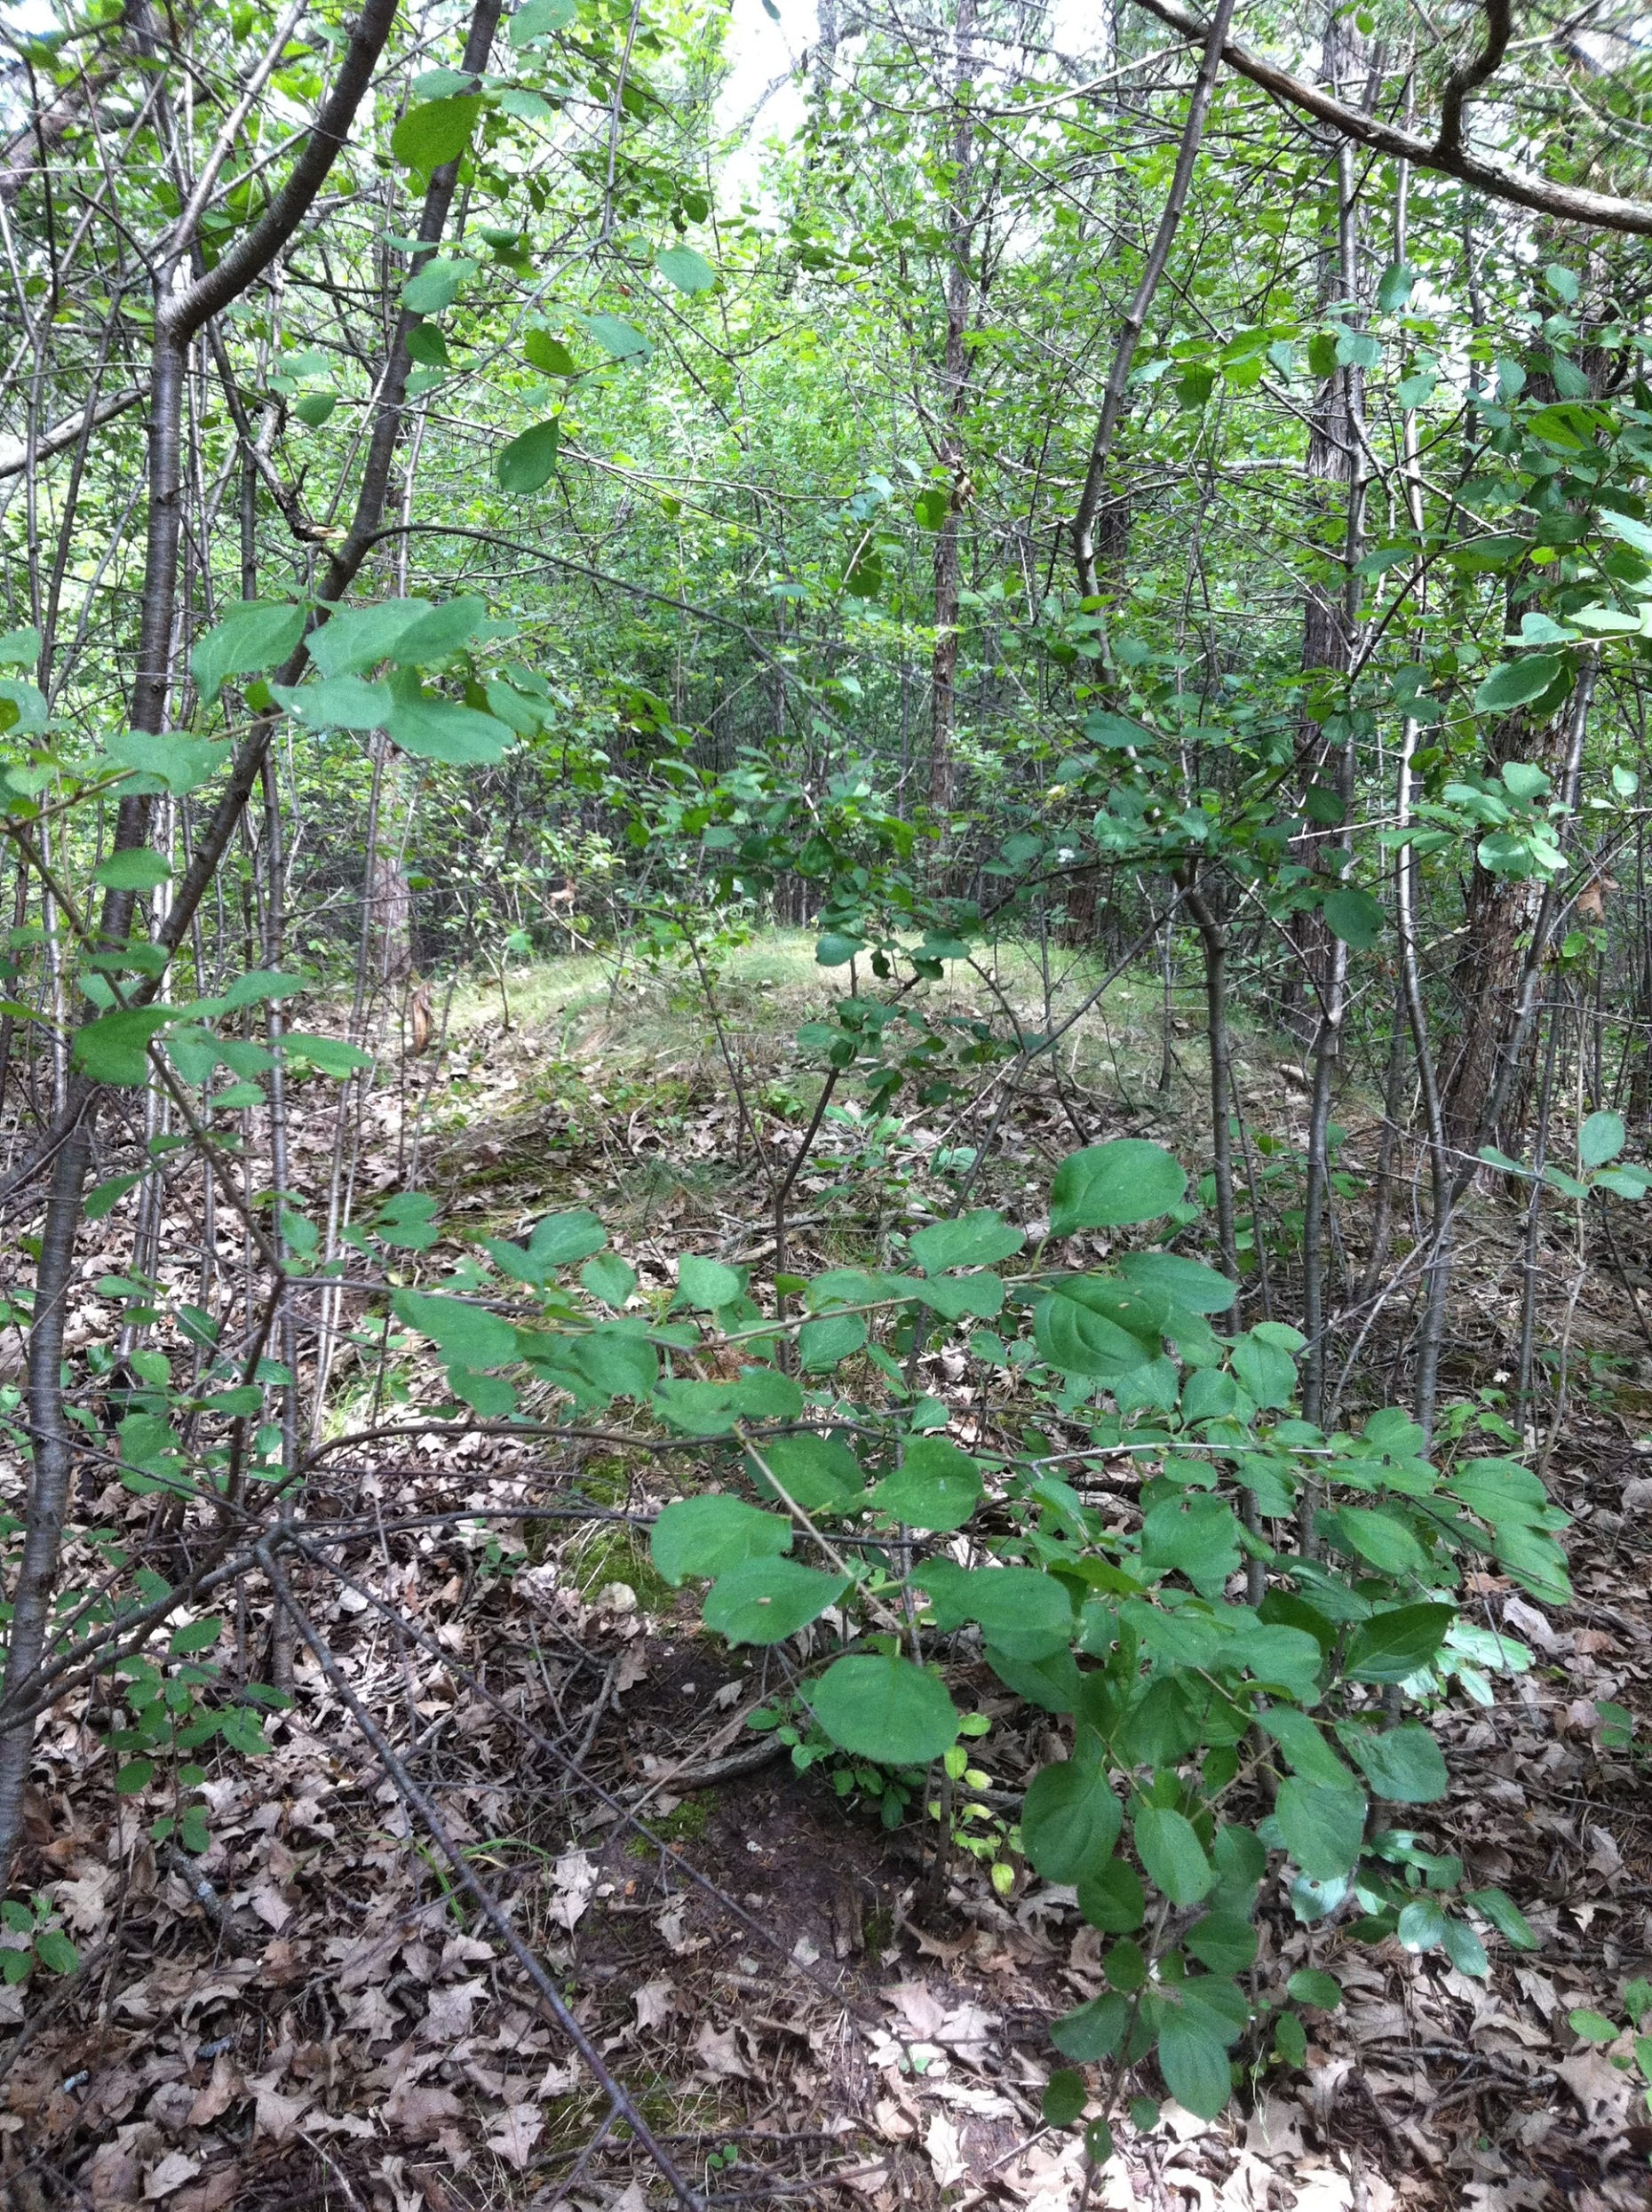 I explored the area Wallbridge described the mounds to be located in PEC and I came across the unusual mounds.